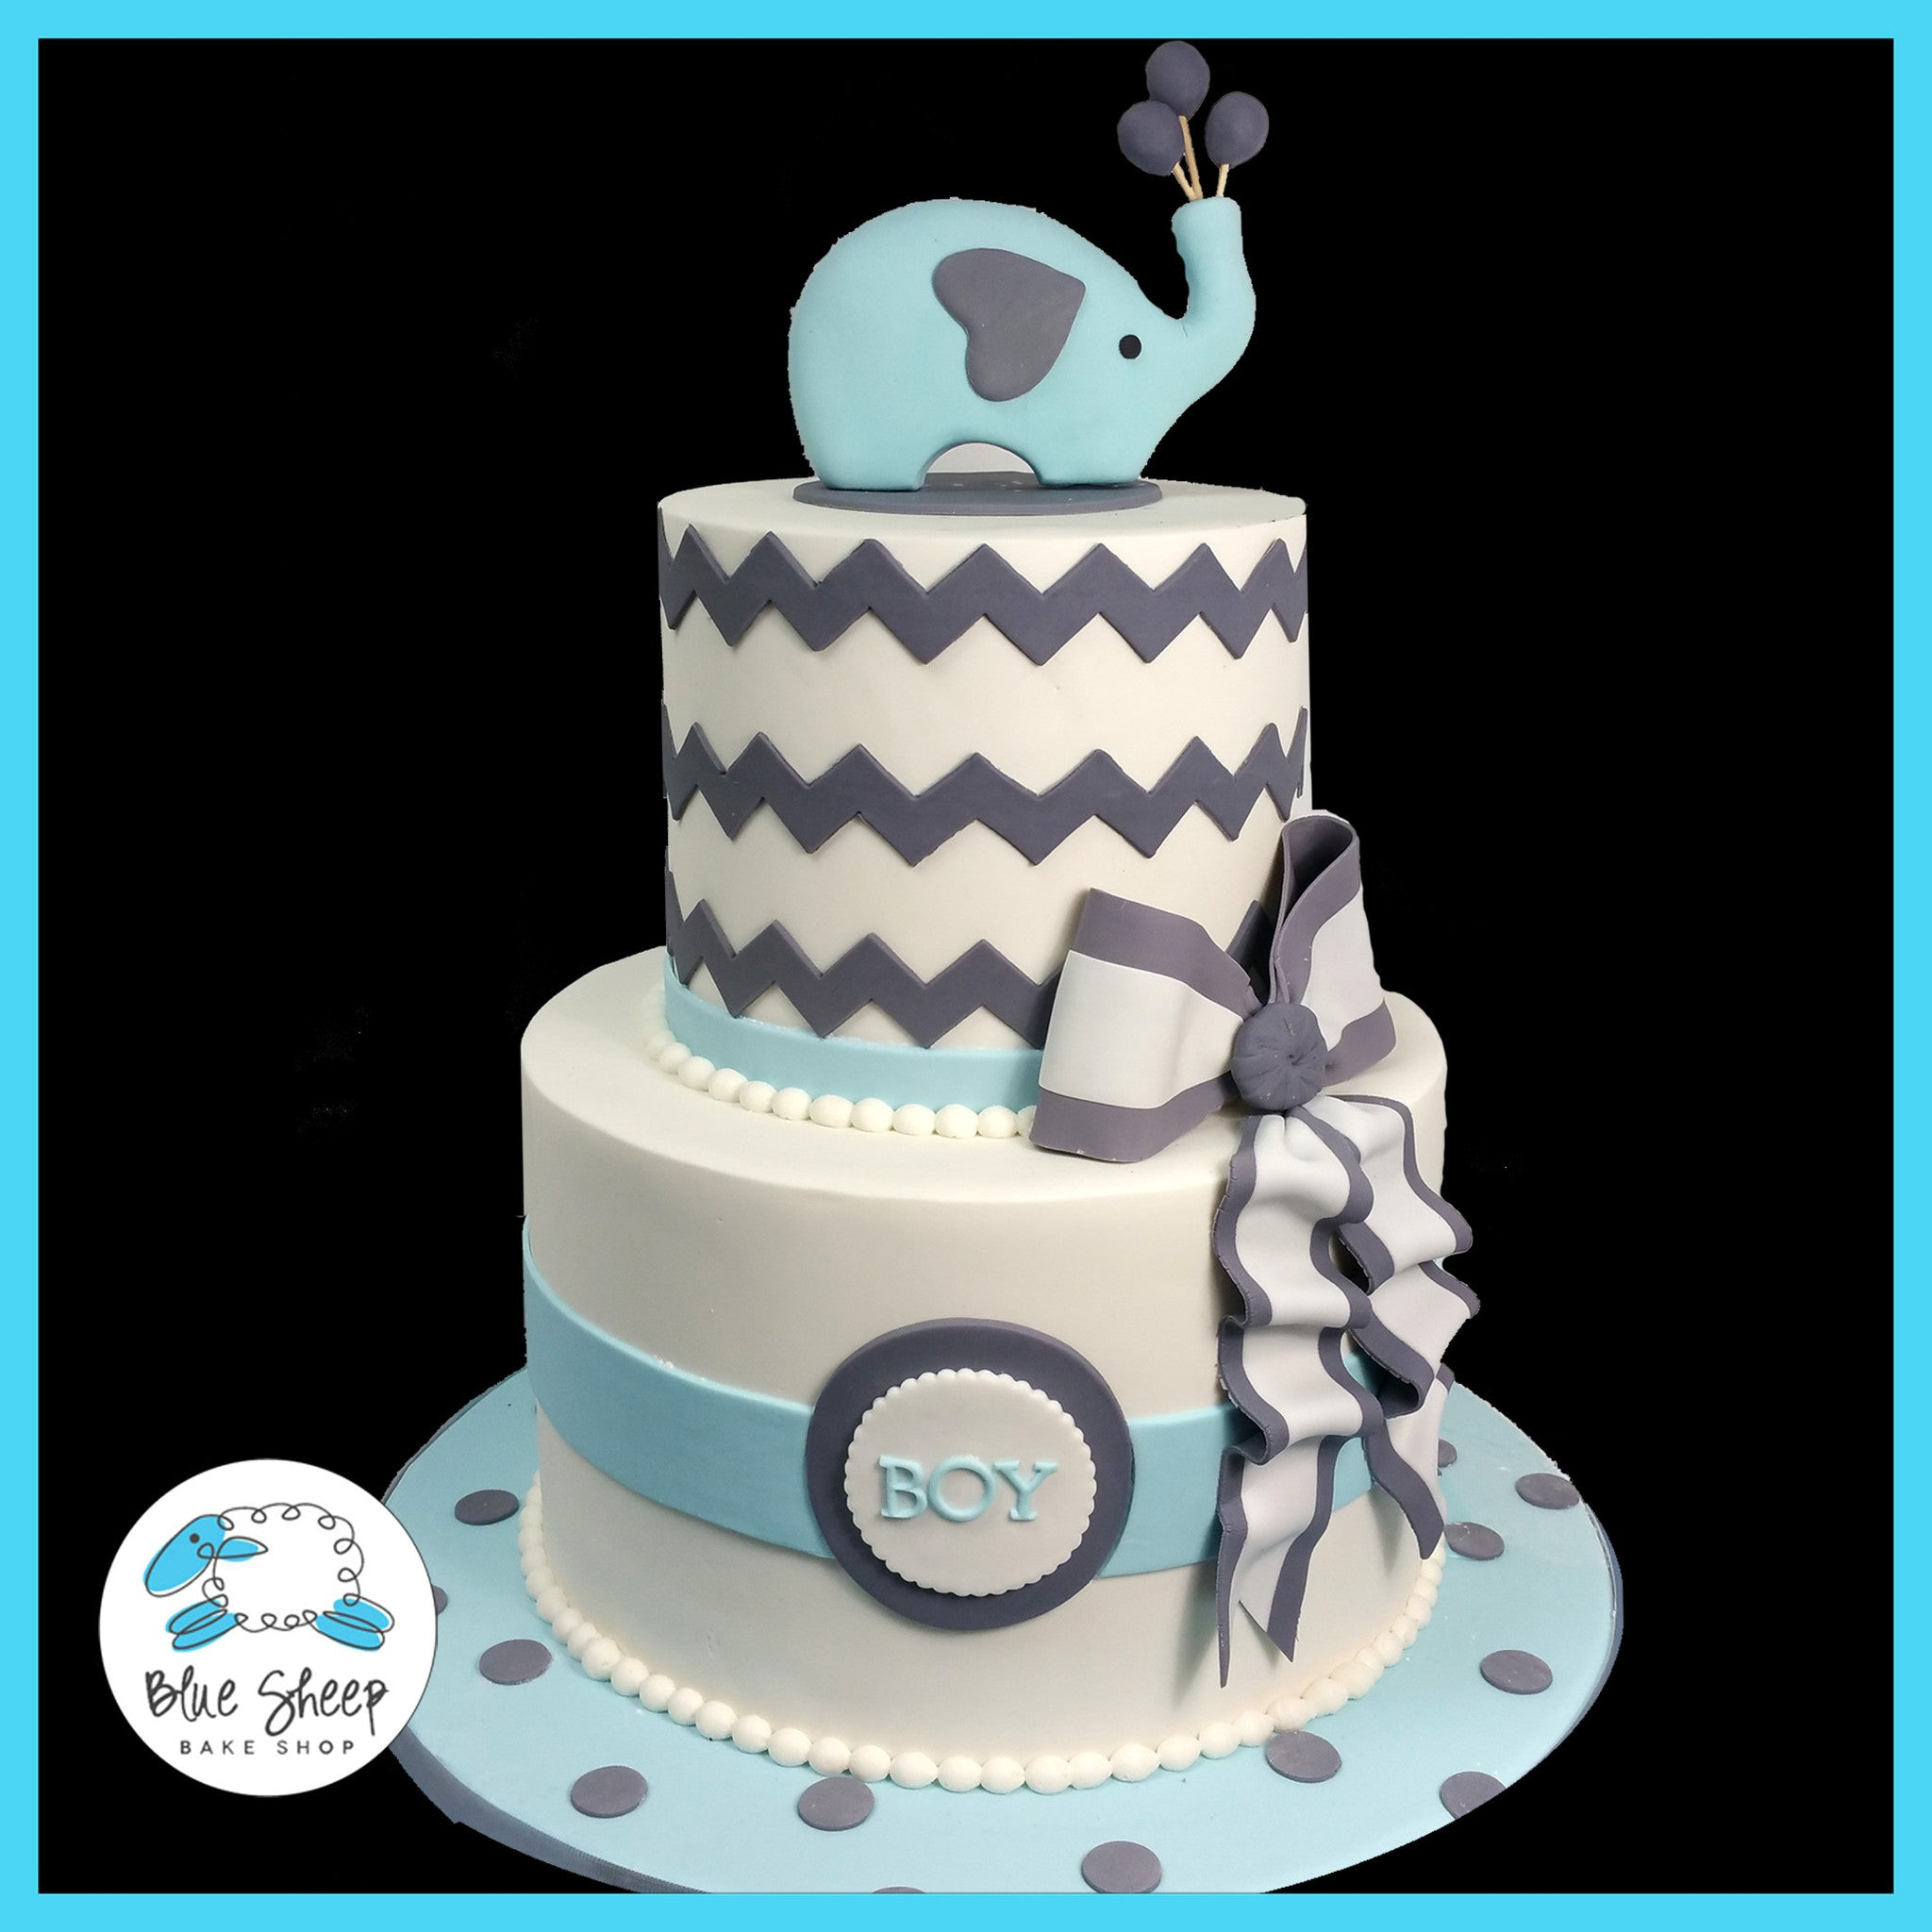 Elephant and Chevron Baby Shower Cake II Blue Sheep Bake Shop